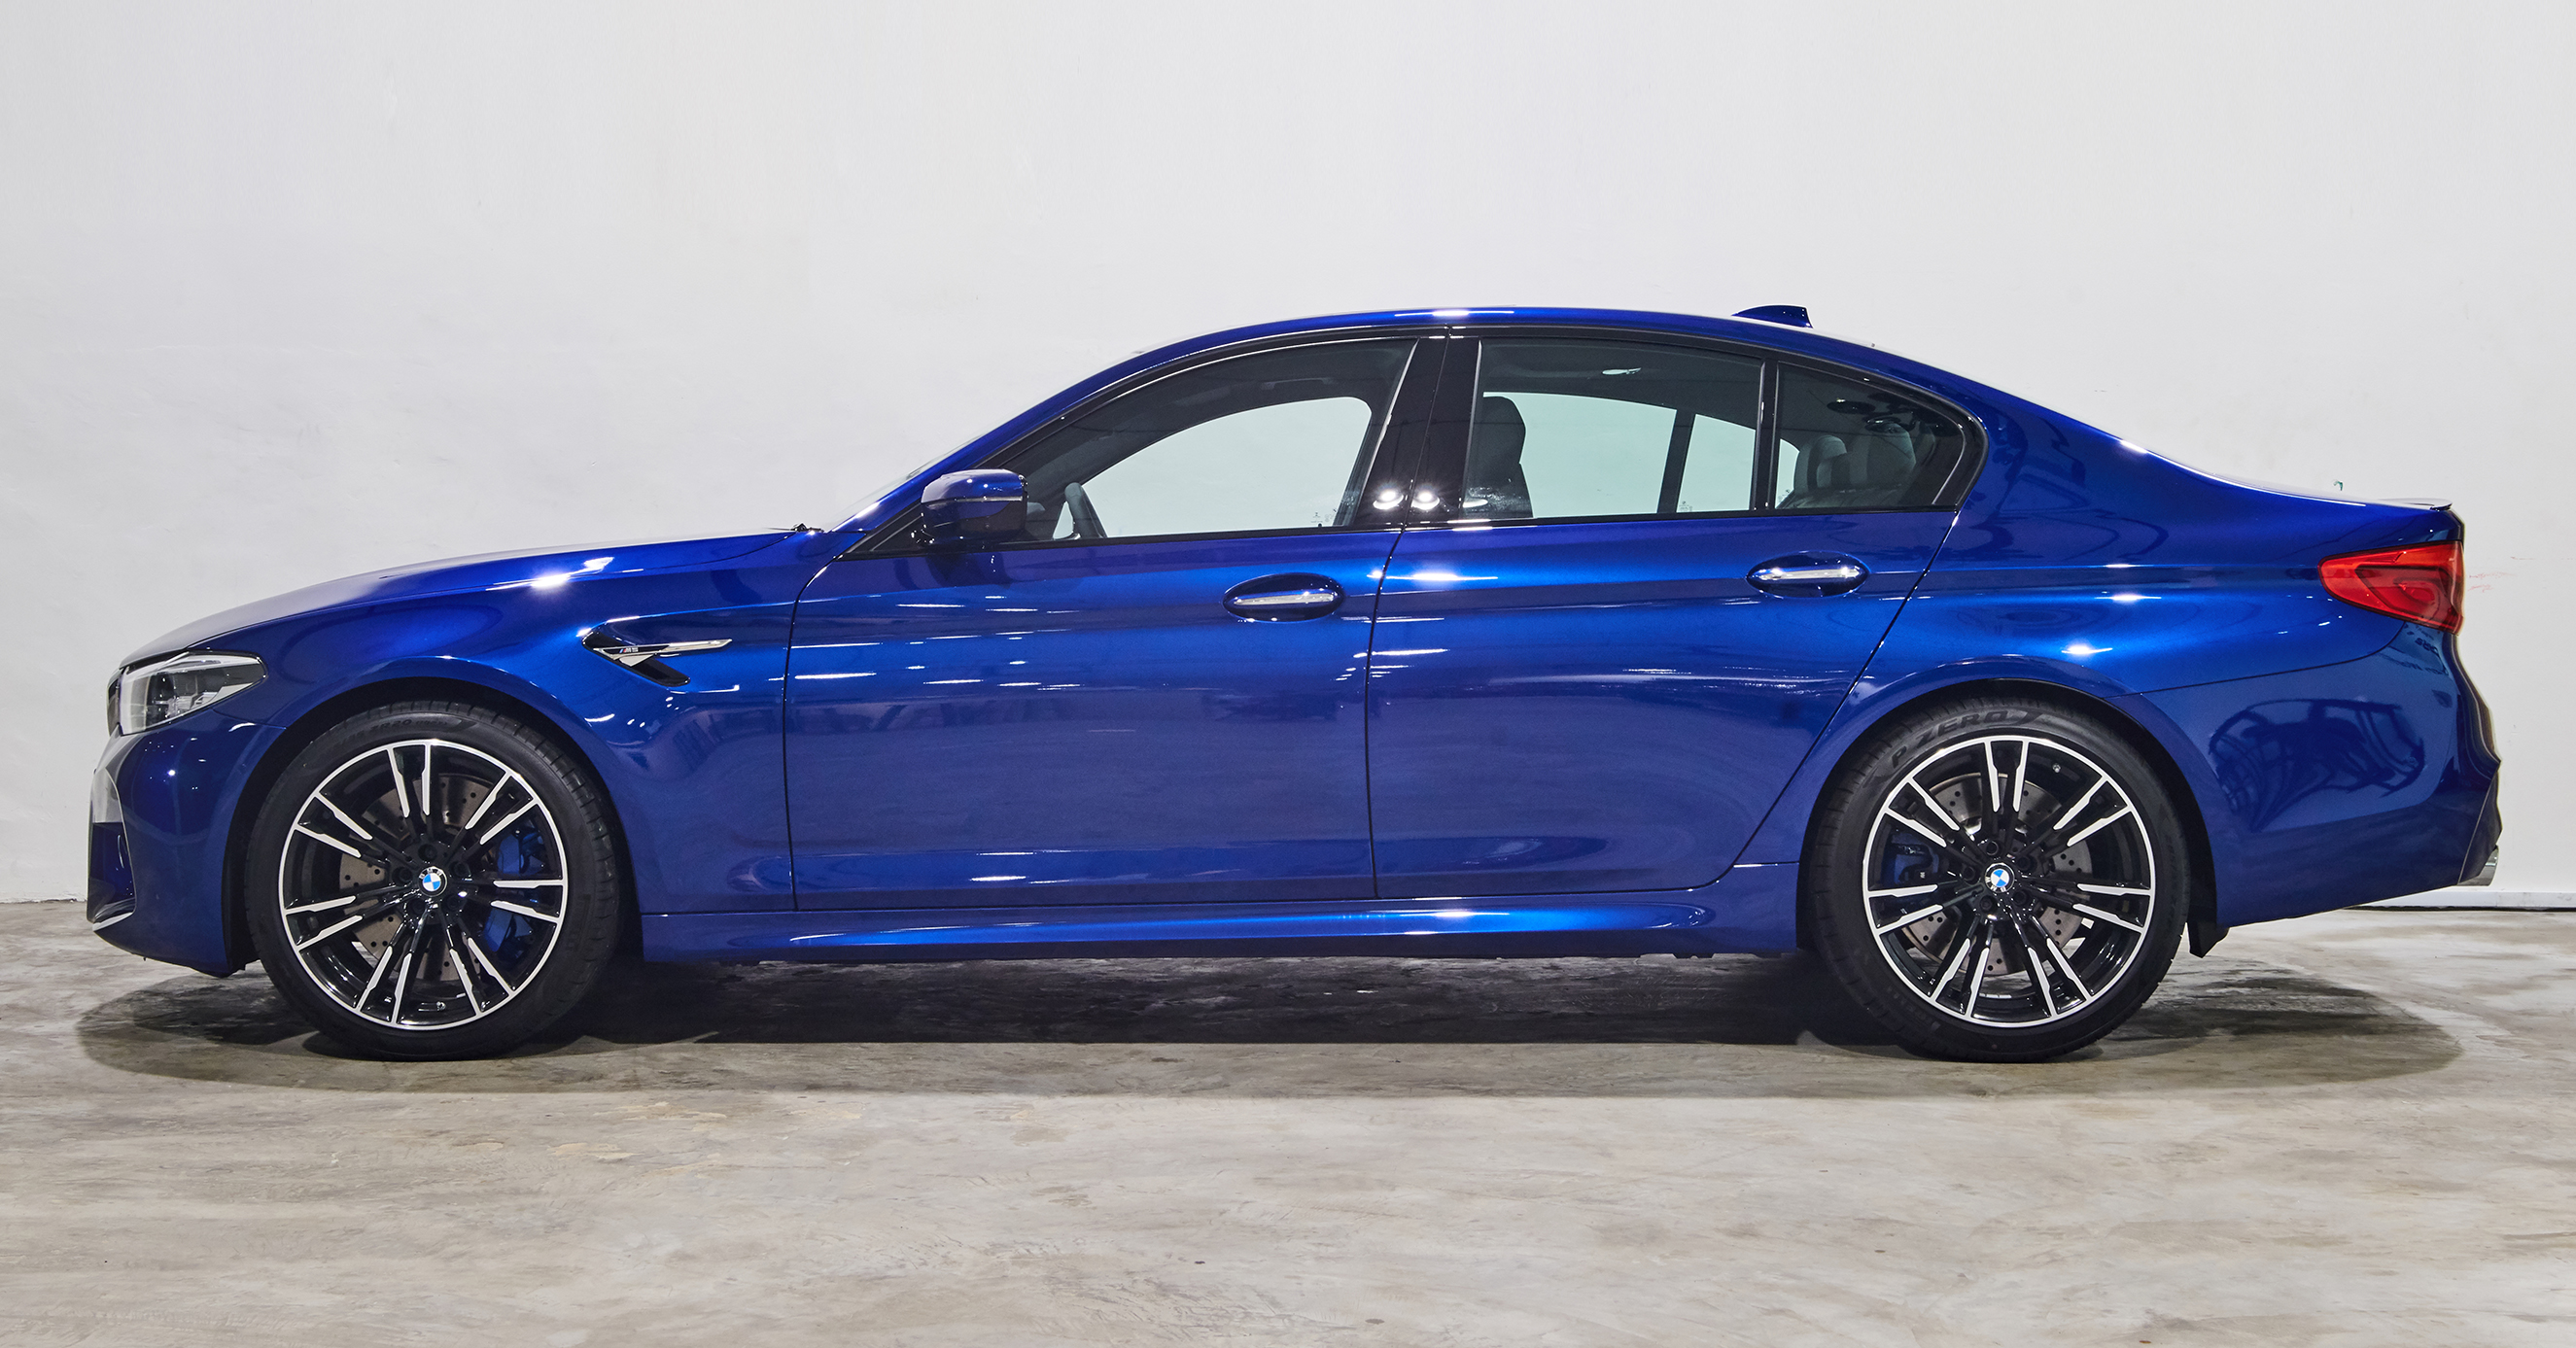 The M5 is an uncompromising combination of elegance and high performance. Beneath its suave and chiseled looking sheet metal is a machine that raring to hit the roads and melt some asphalt, a machine that is quintessentially Jekyll and Hyde.